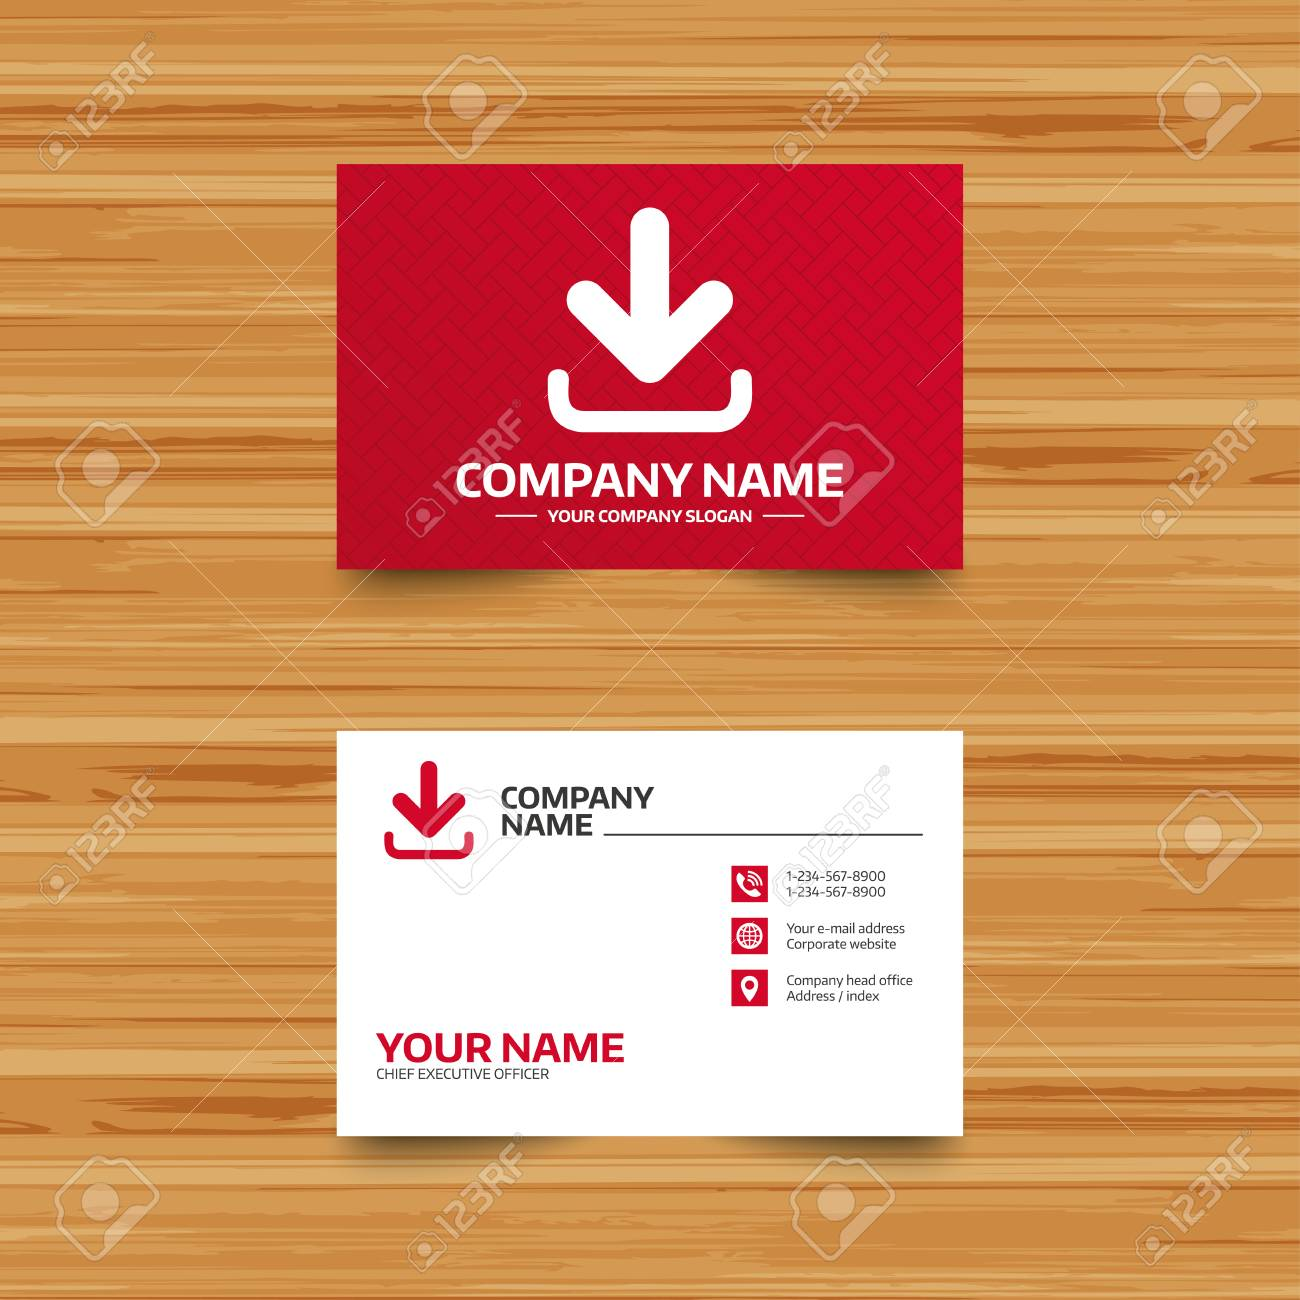 Business card template download icon upload button load symbol business card template download icon upload button load symbol phone globe reheart